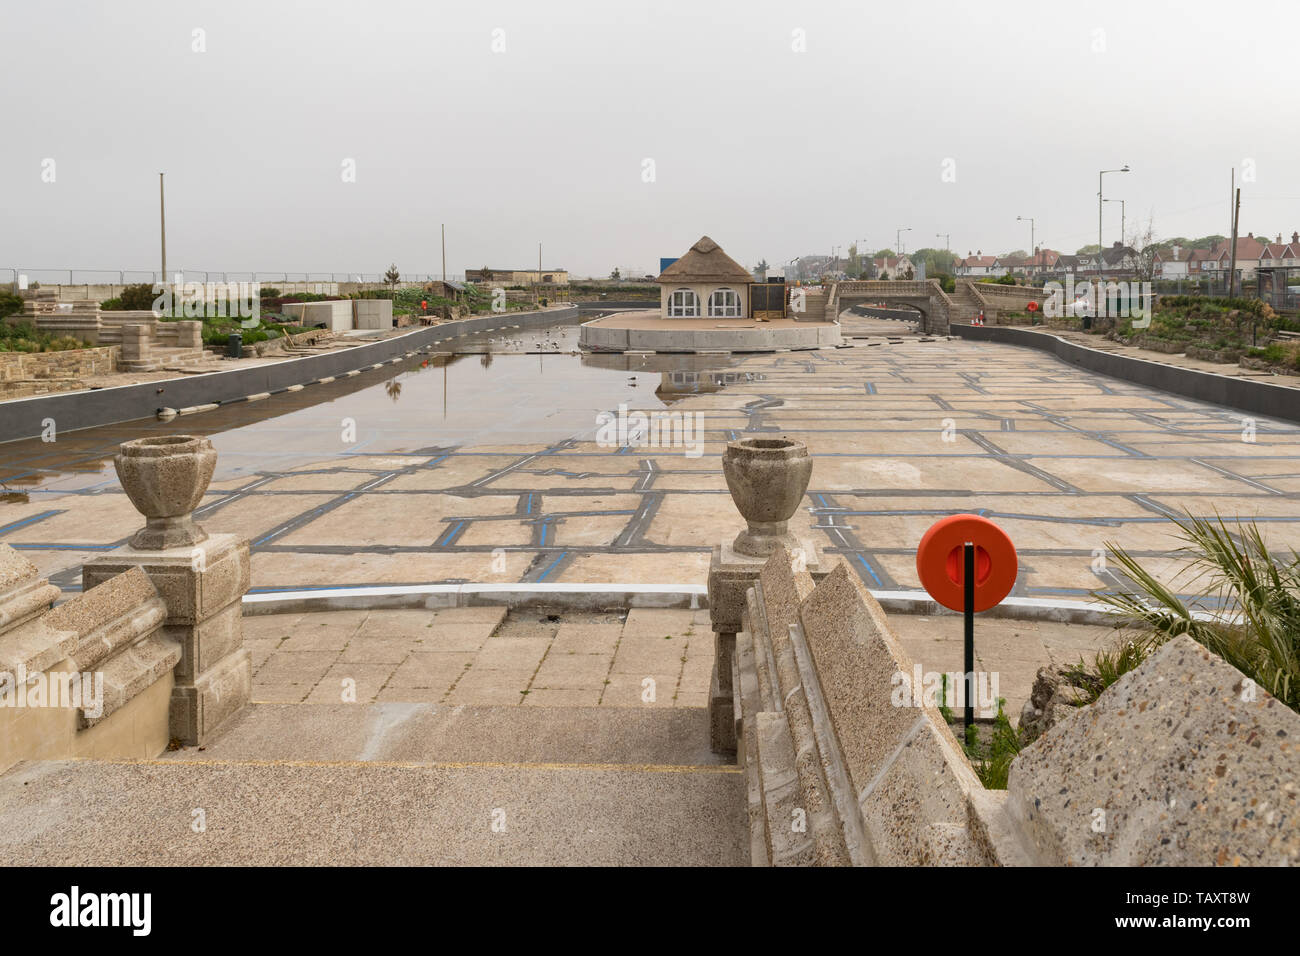 Great Yarmouth boating lake, part of the Venetian Waterways - drained during restoration works in 2019, Norfolk, England, UK - Stock Image